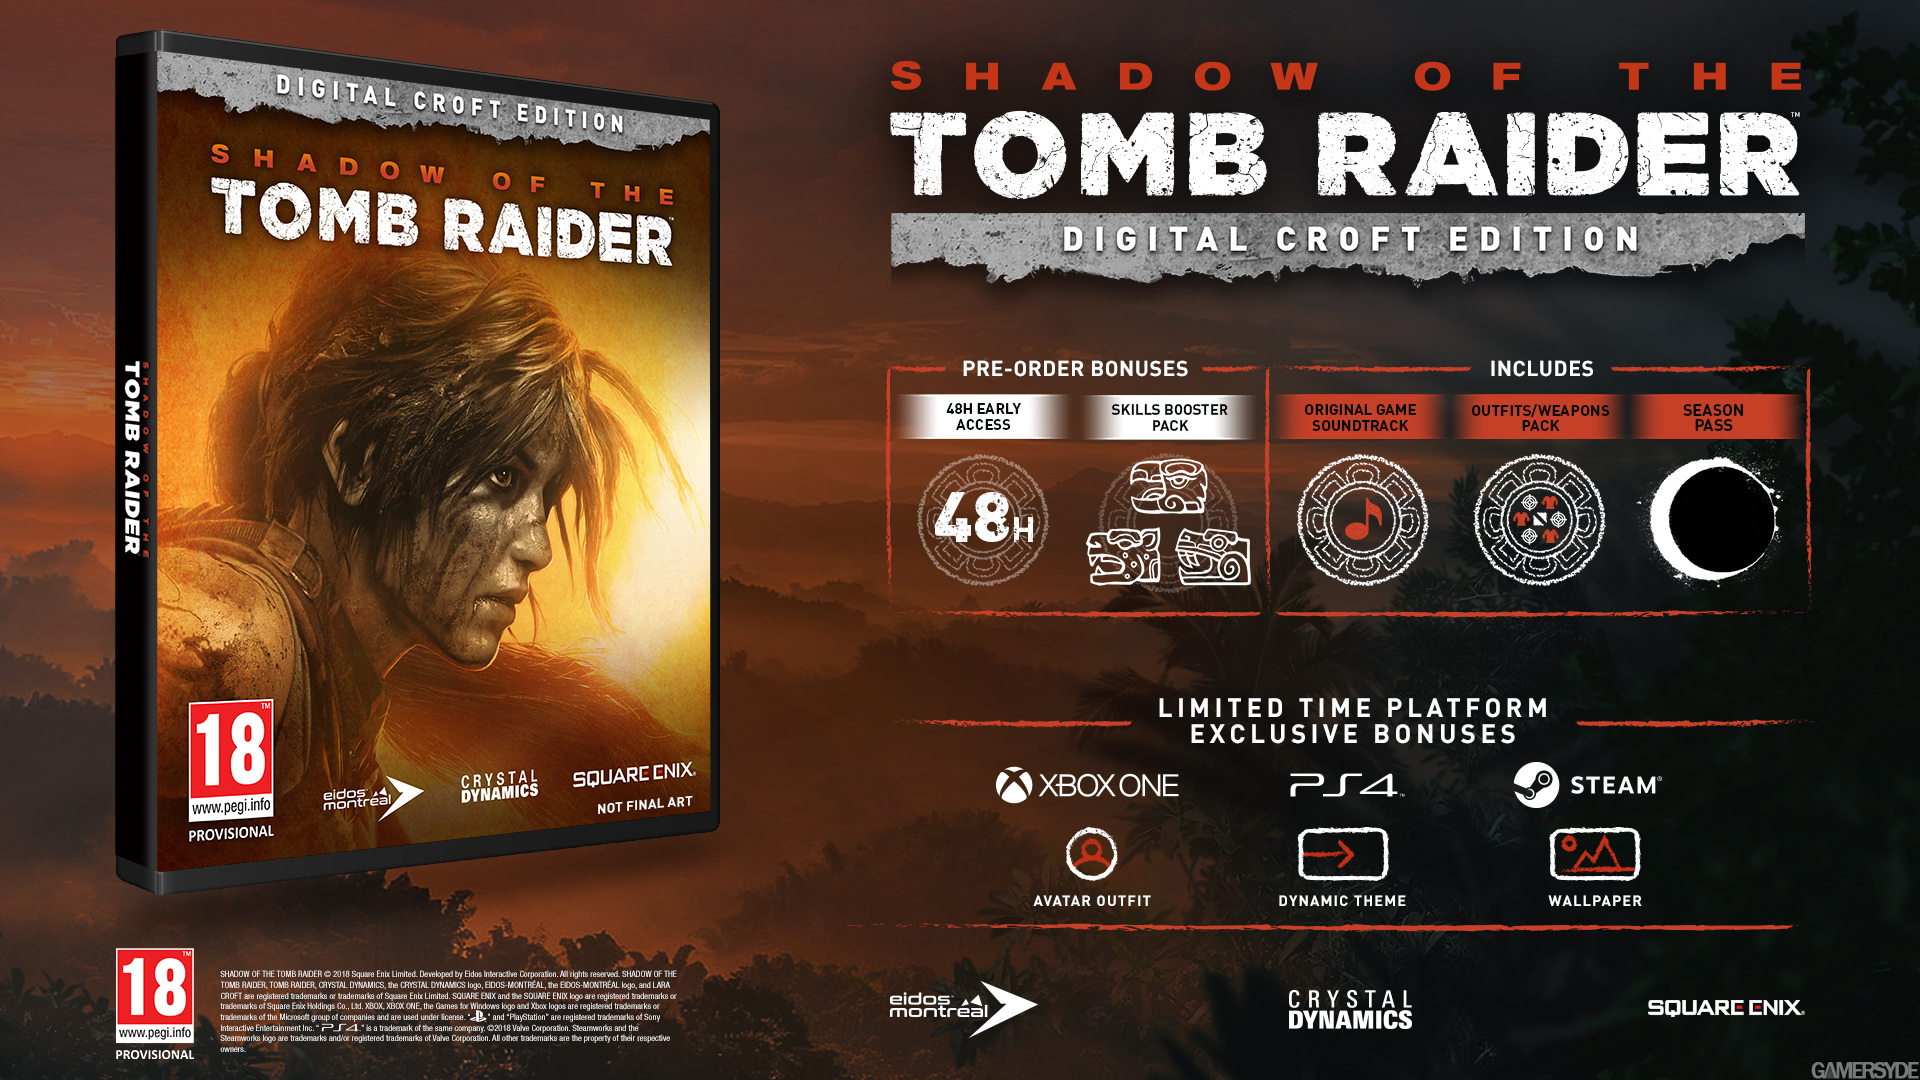 image_shadow_of_the_tomb_raider-38090-40